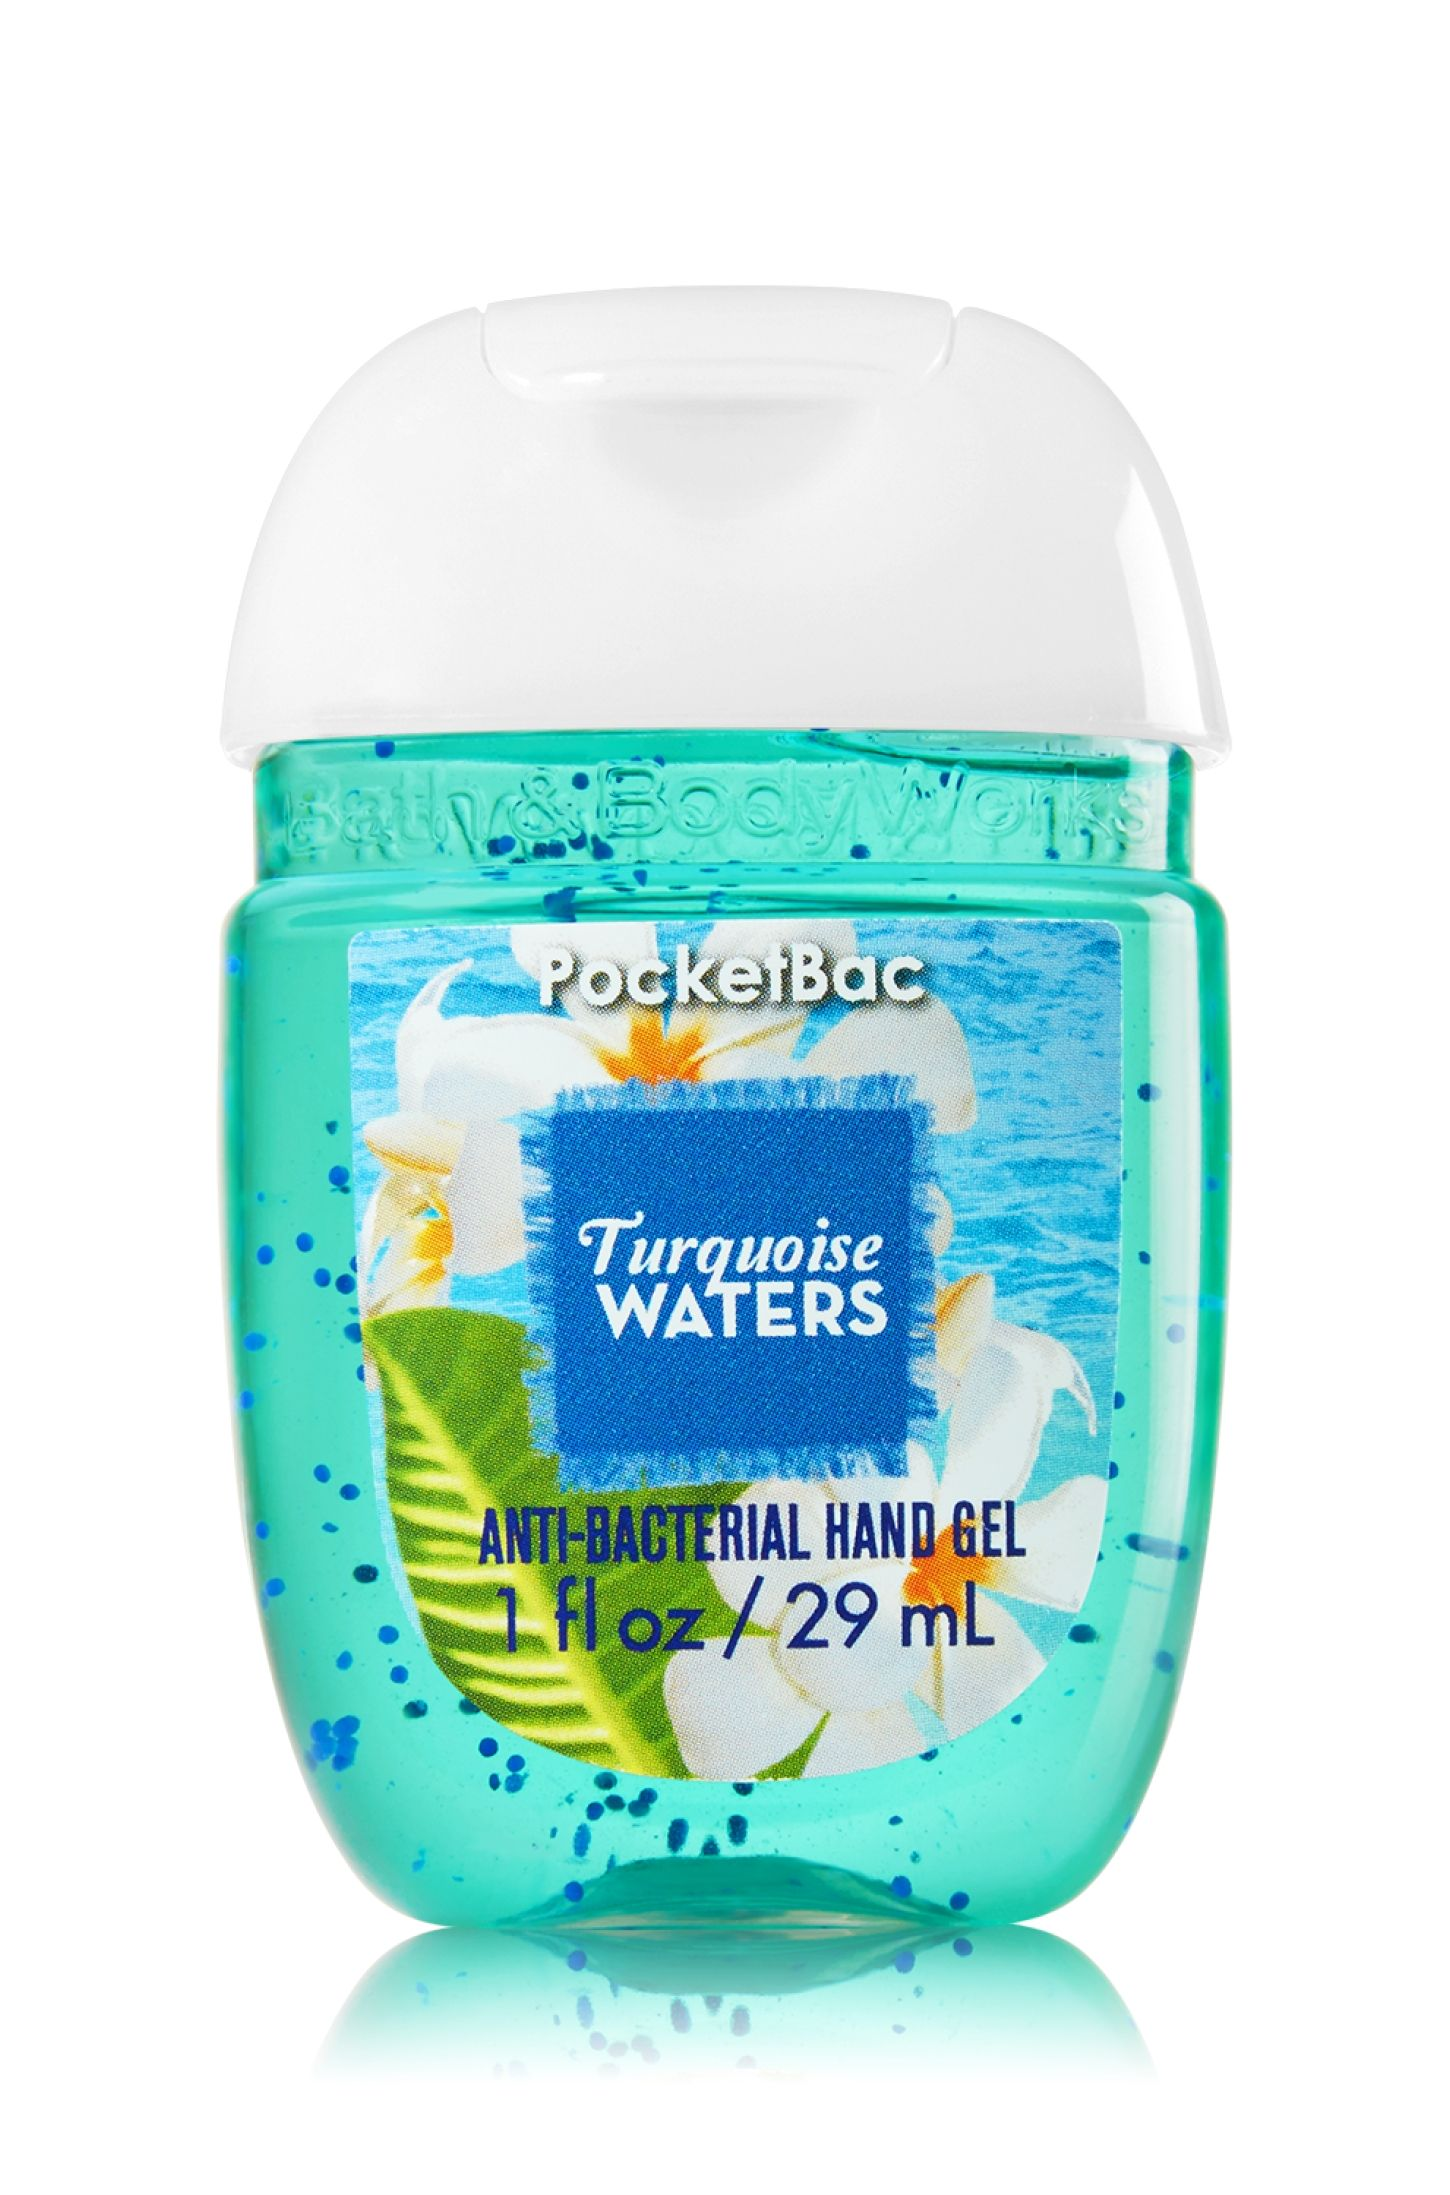 Turquoise Waters Pocketbac Sanitizing Hand Sanitizer Body